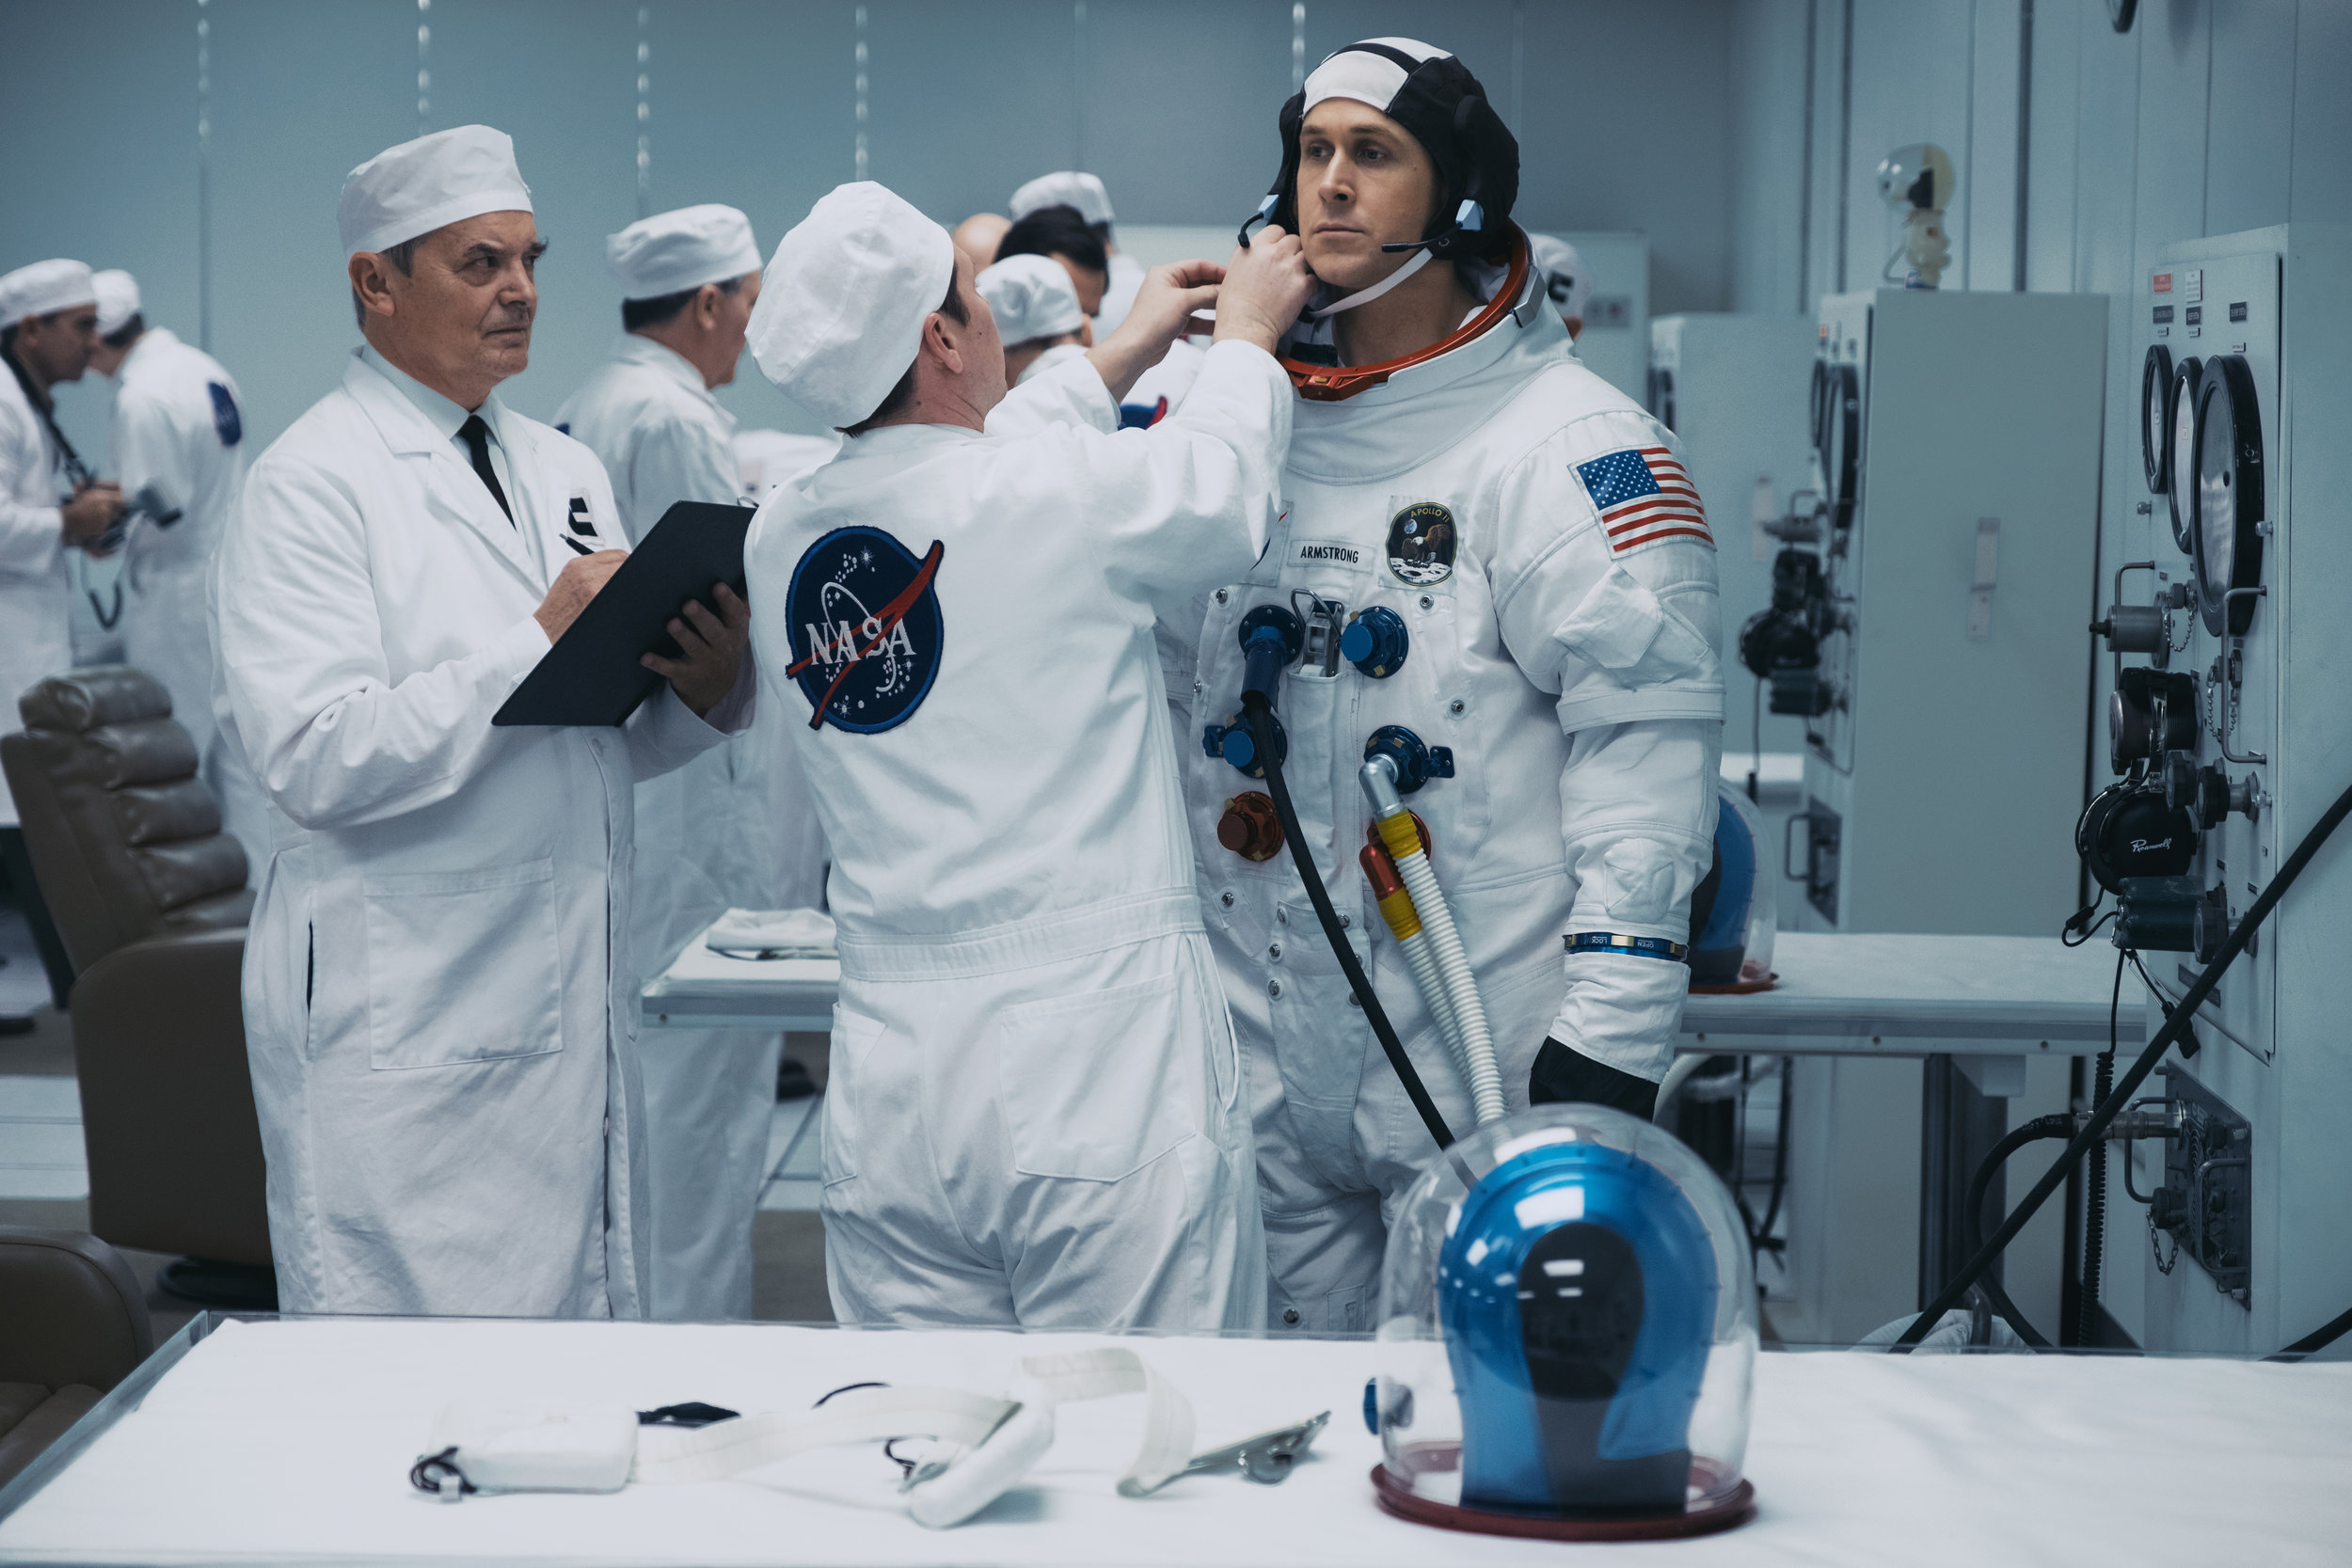 """Technicians put astronaut Neil Armstrong (Ryan Gosling) into his spacesuit in preparation for the Apollo 11 mission to the moon, in director Damien Chazelle's """"First Man."""" (Photo by Daniel McFadden, courtesy of Universal Pictures / DreamWorks Pictures)"""